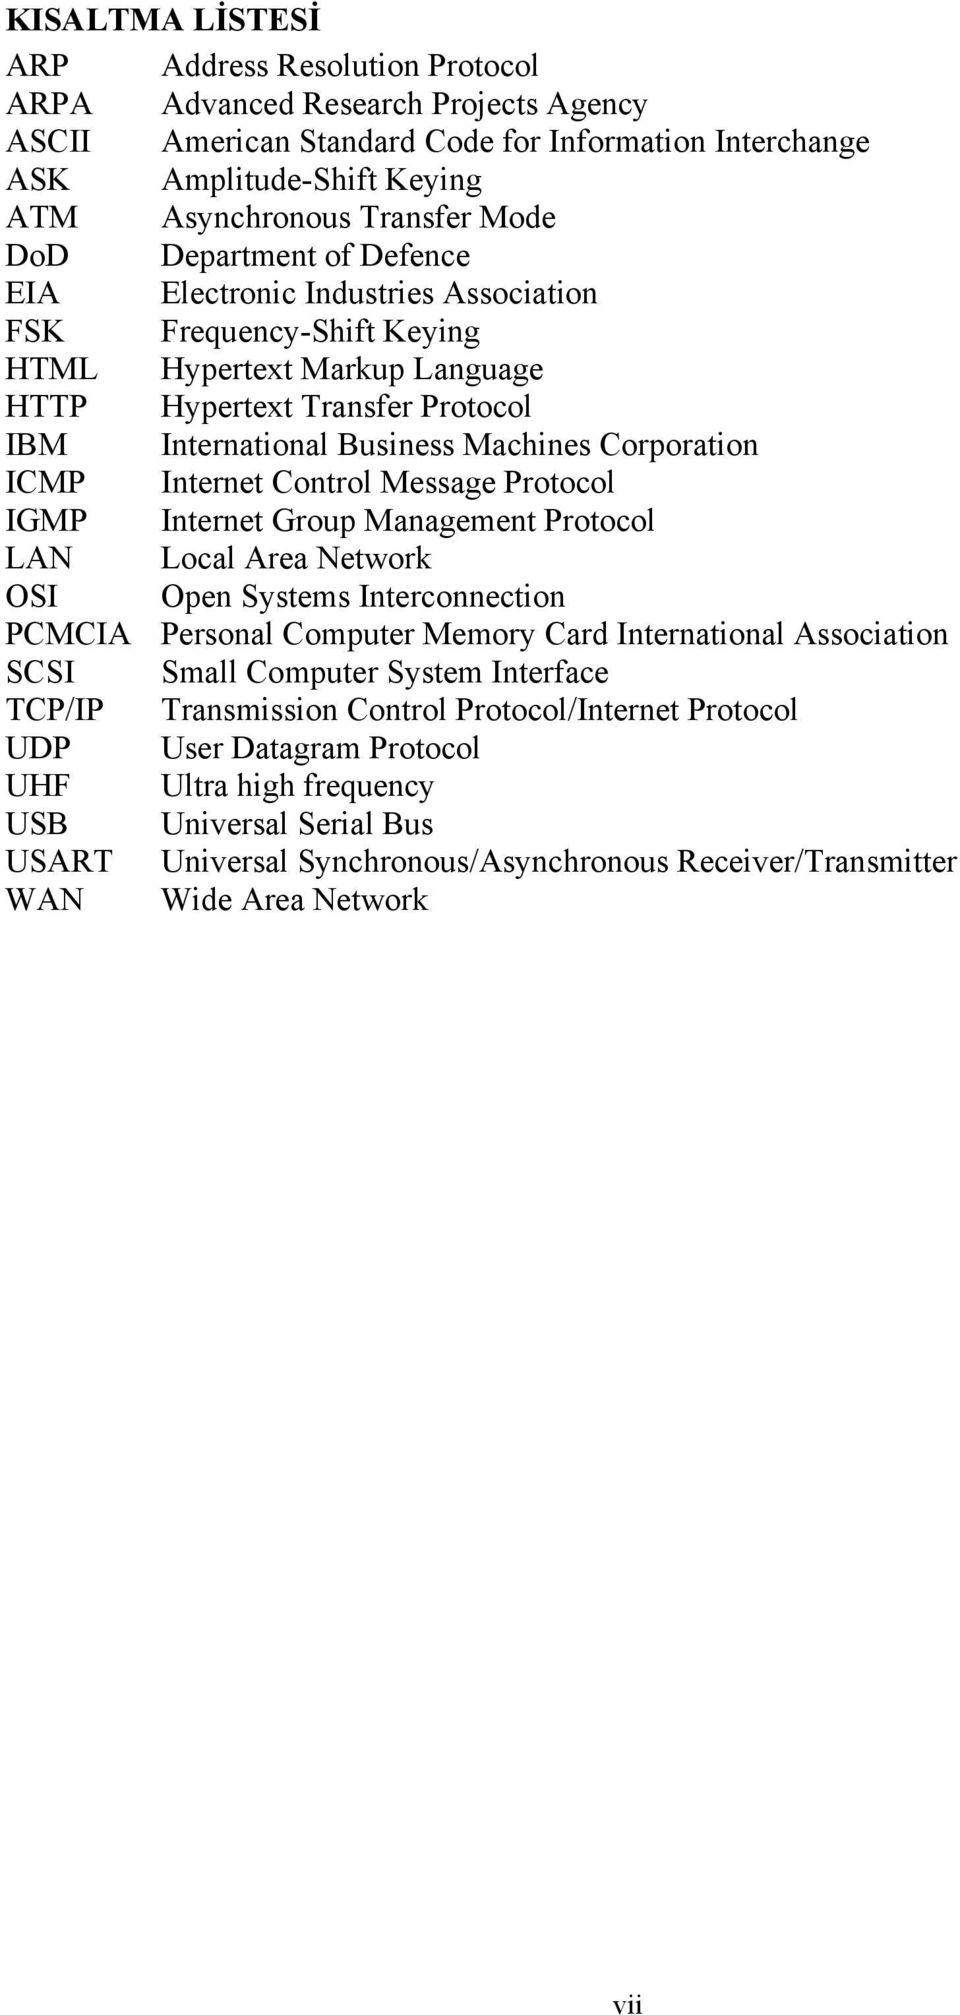 Corporation ICMP Internet Control Message Protocol IGMP Internet Group Management Protocol LAN Local Area Network OSI Open Systems Interconnection PCMCIA Personal Computer Memory Card International